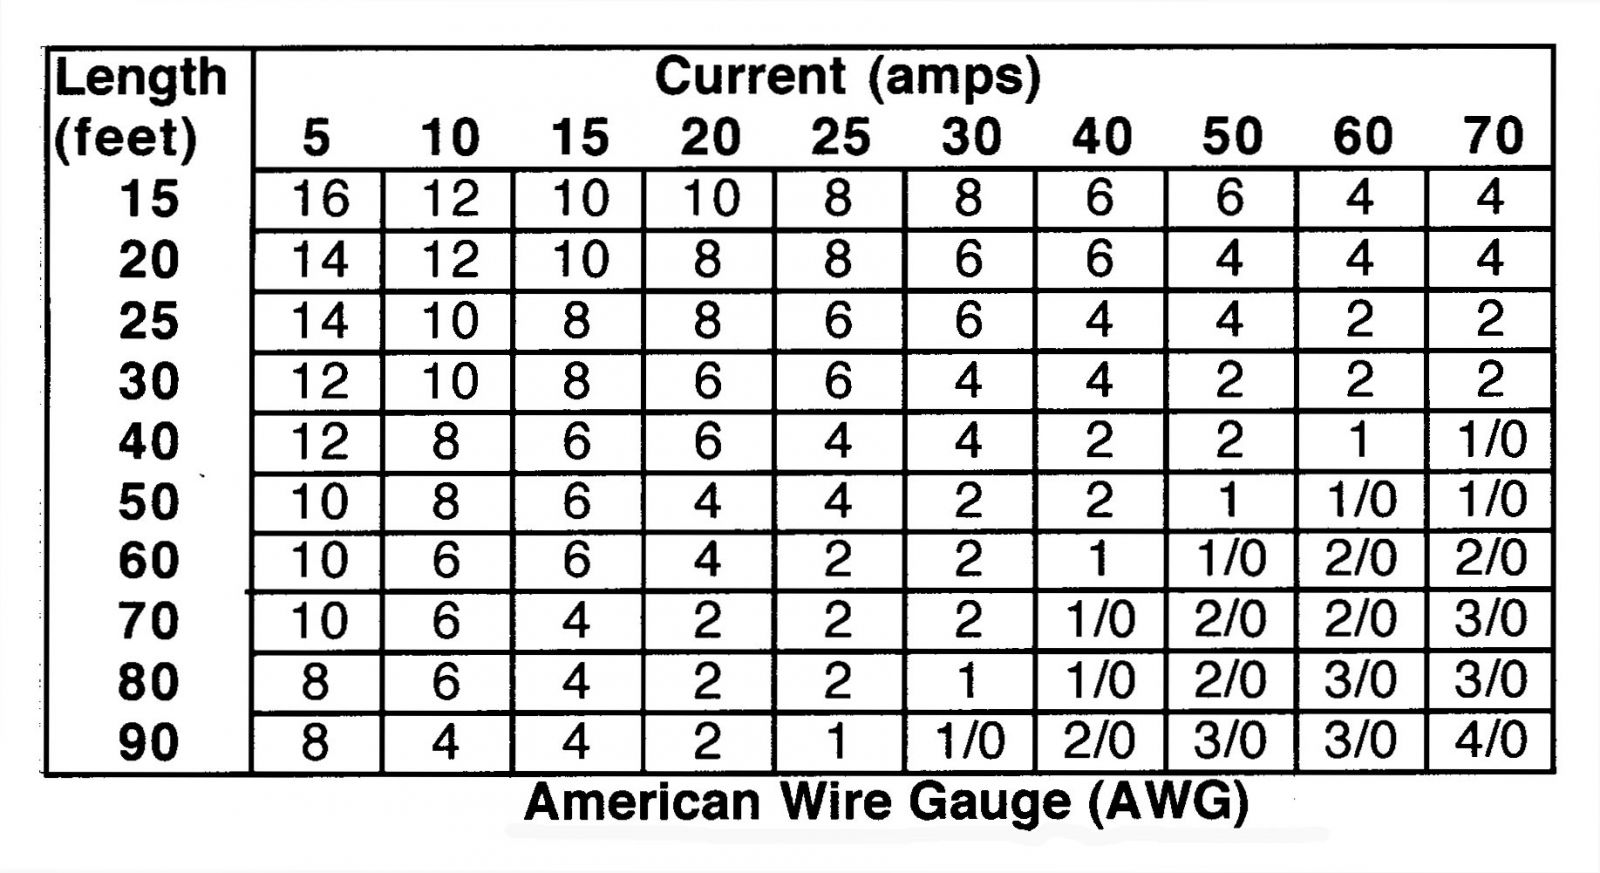 12v wire gauge chart carnavalsmusic 12v wire gauge chart greentooth Images